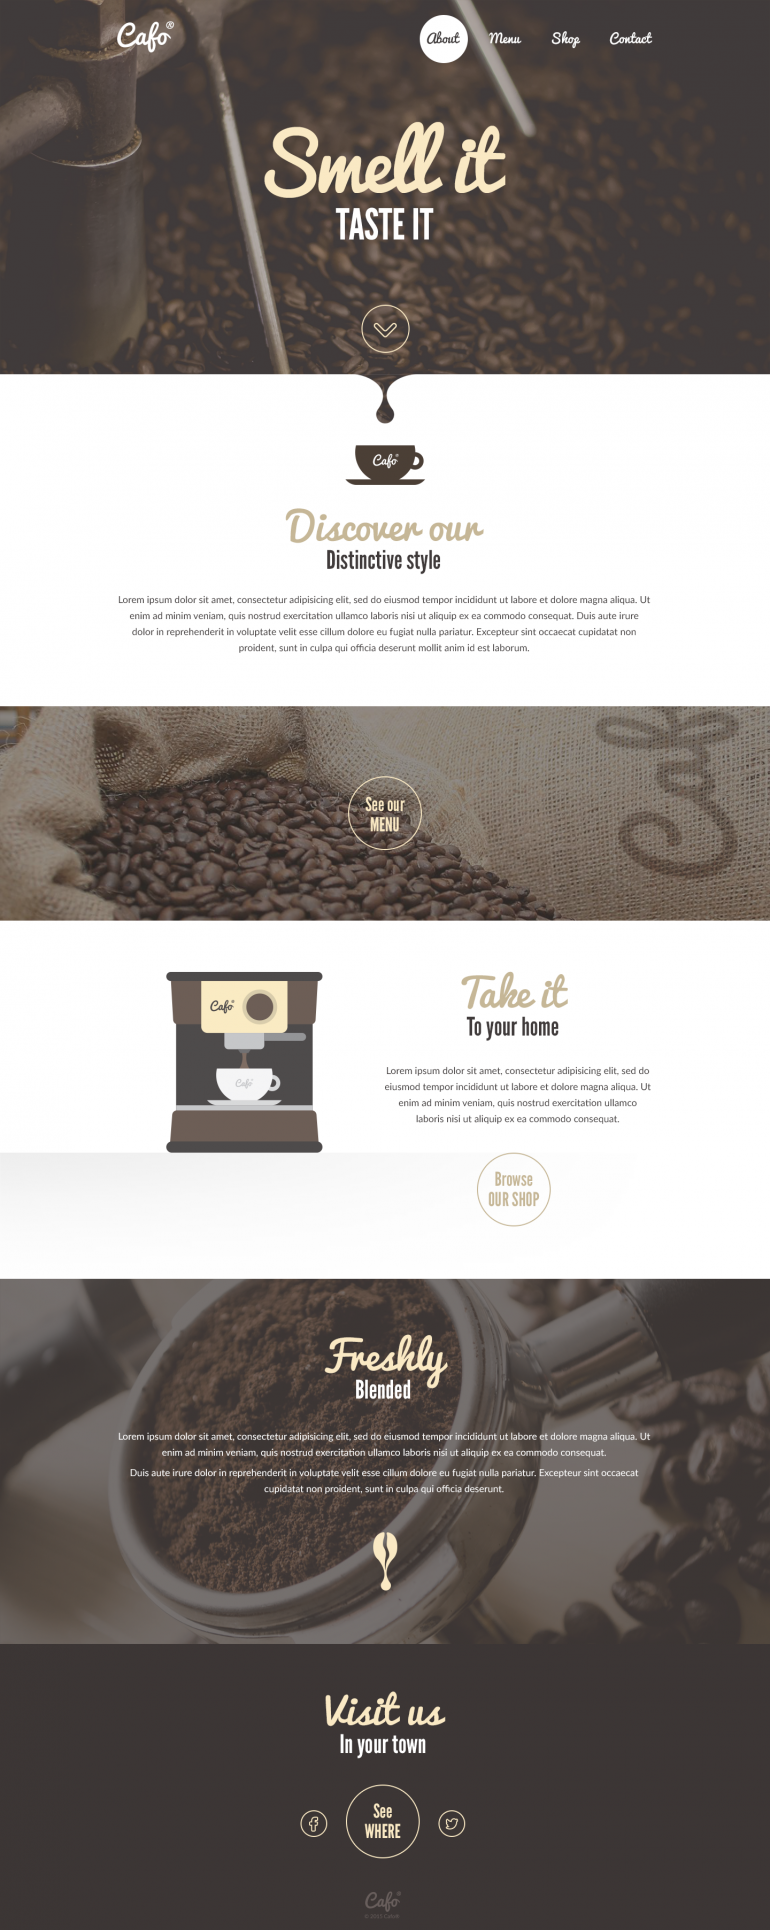 Smell it – Coffee Shop Landingpage Idea.